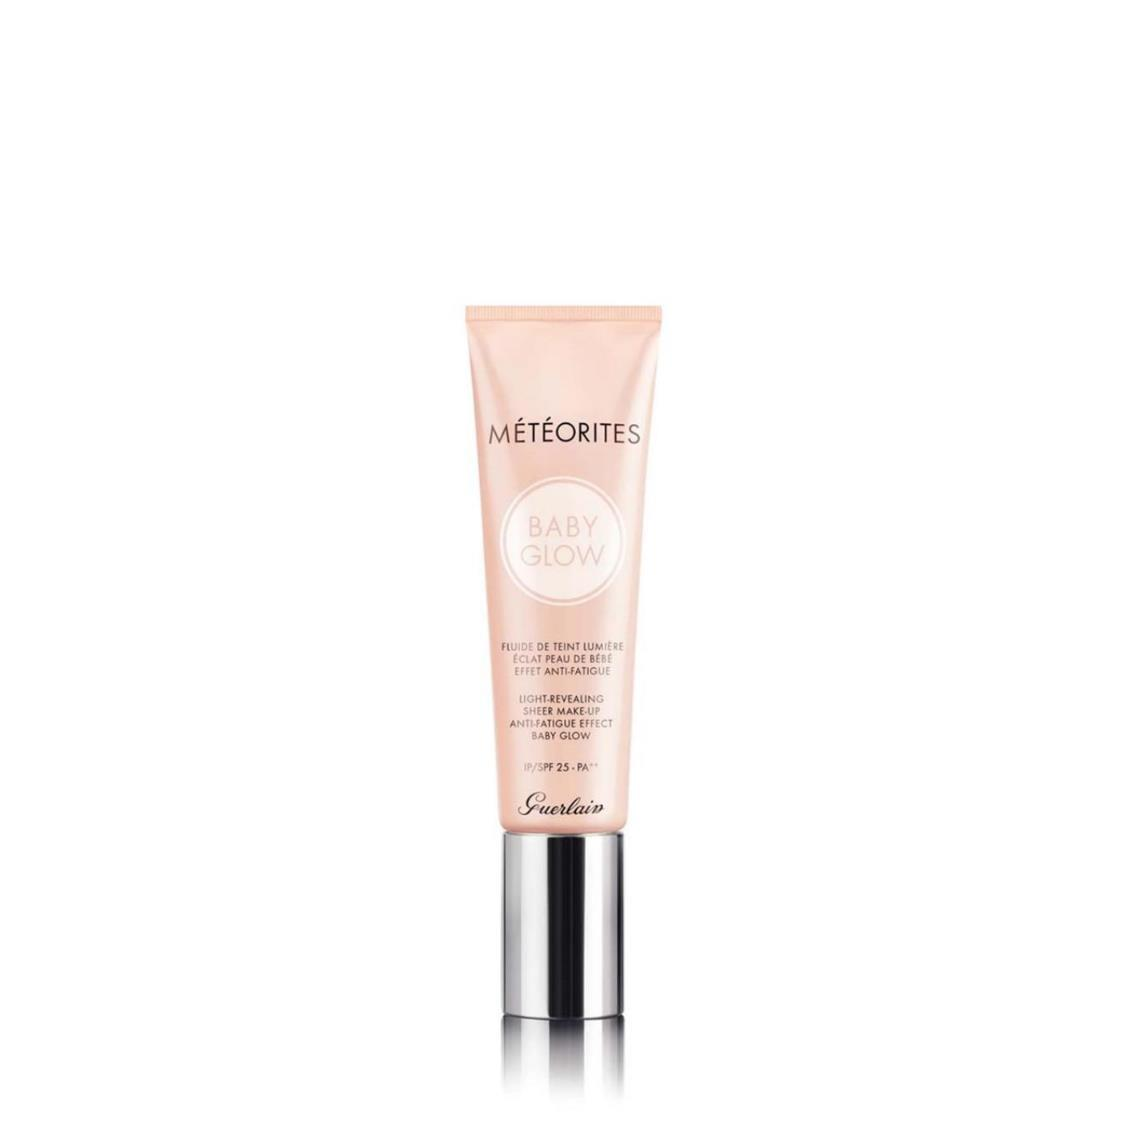 Mtorites Baby Glow Light-Revealing Sheer Make Up